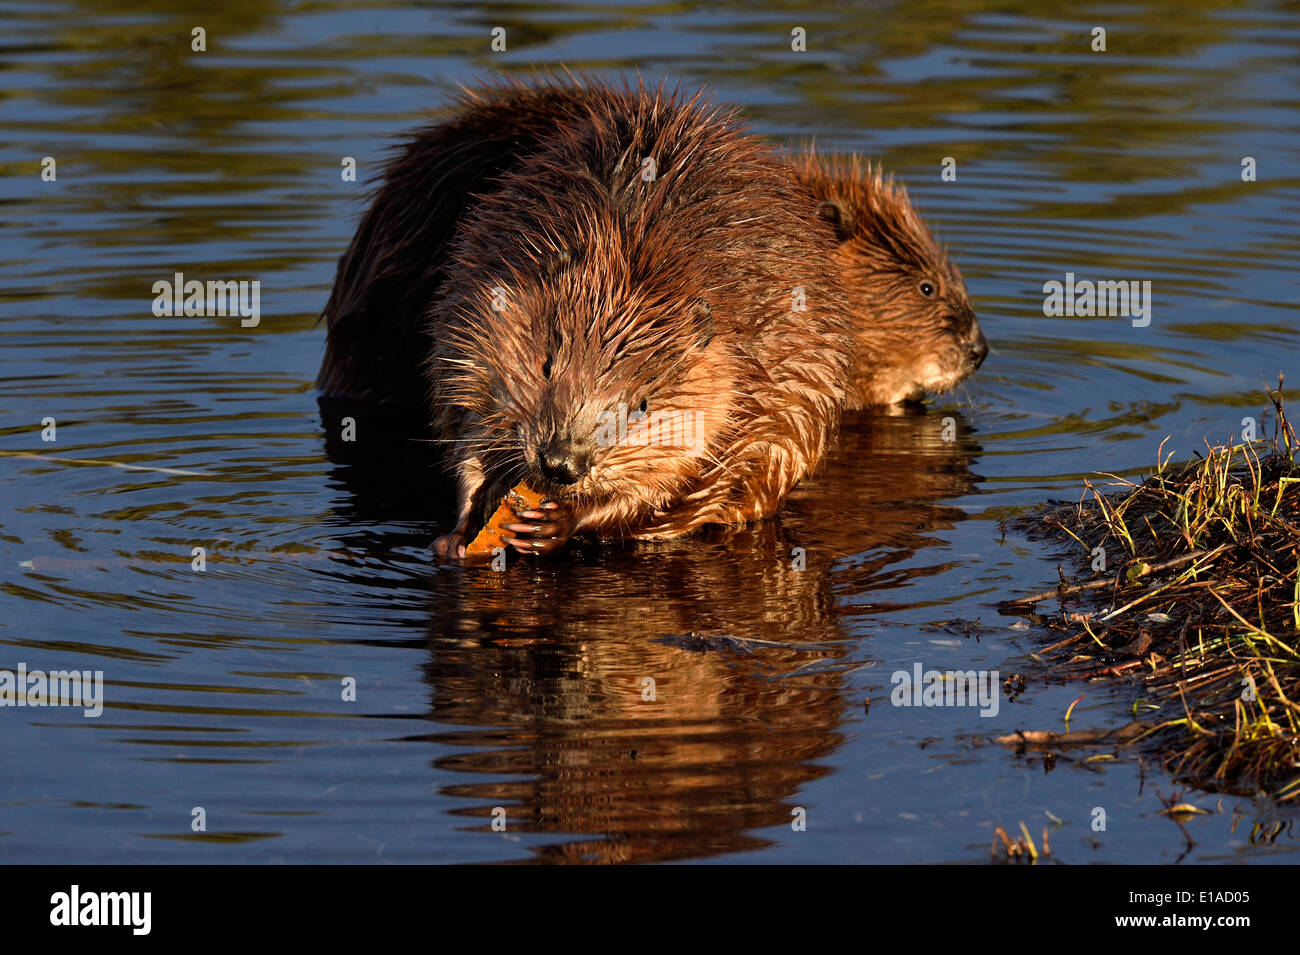 Two young beavers sitting in the water of their pond feeding on some tree branches - Stock Image